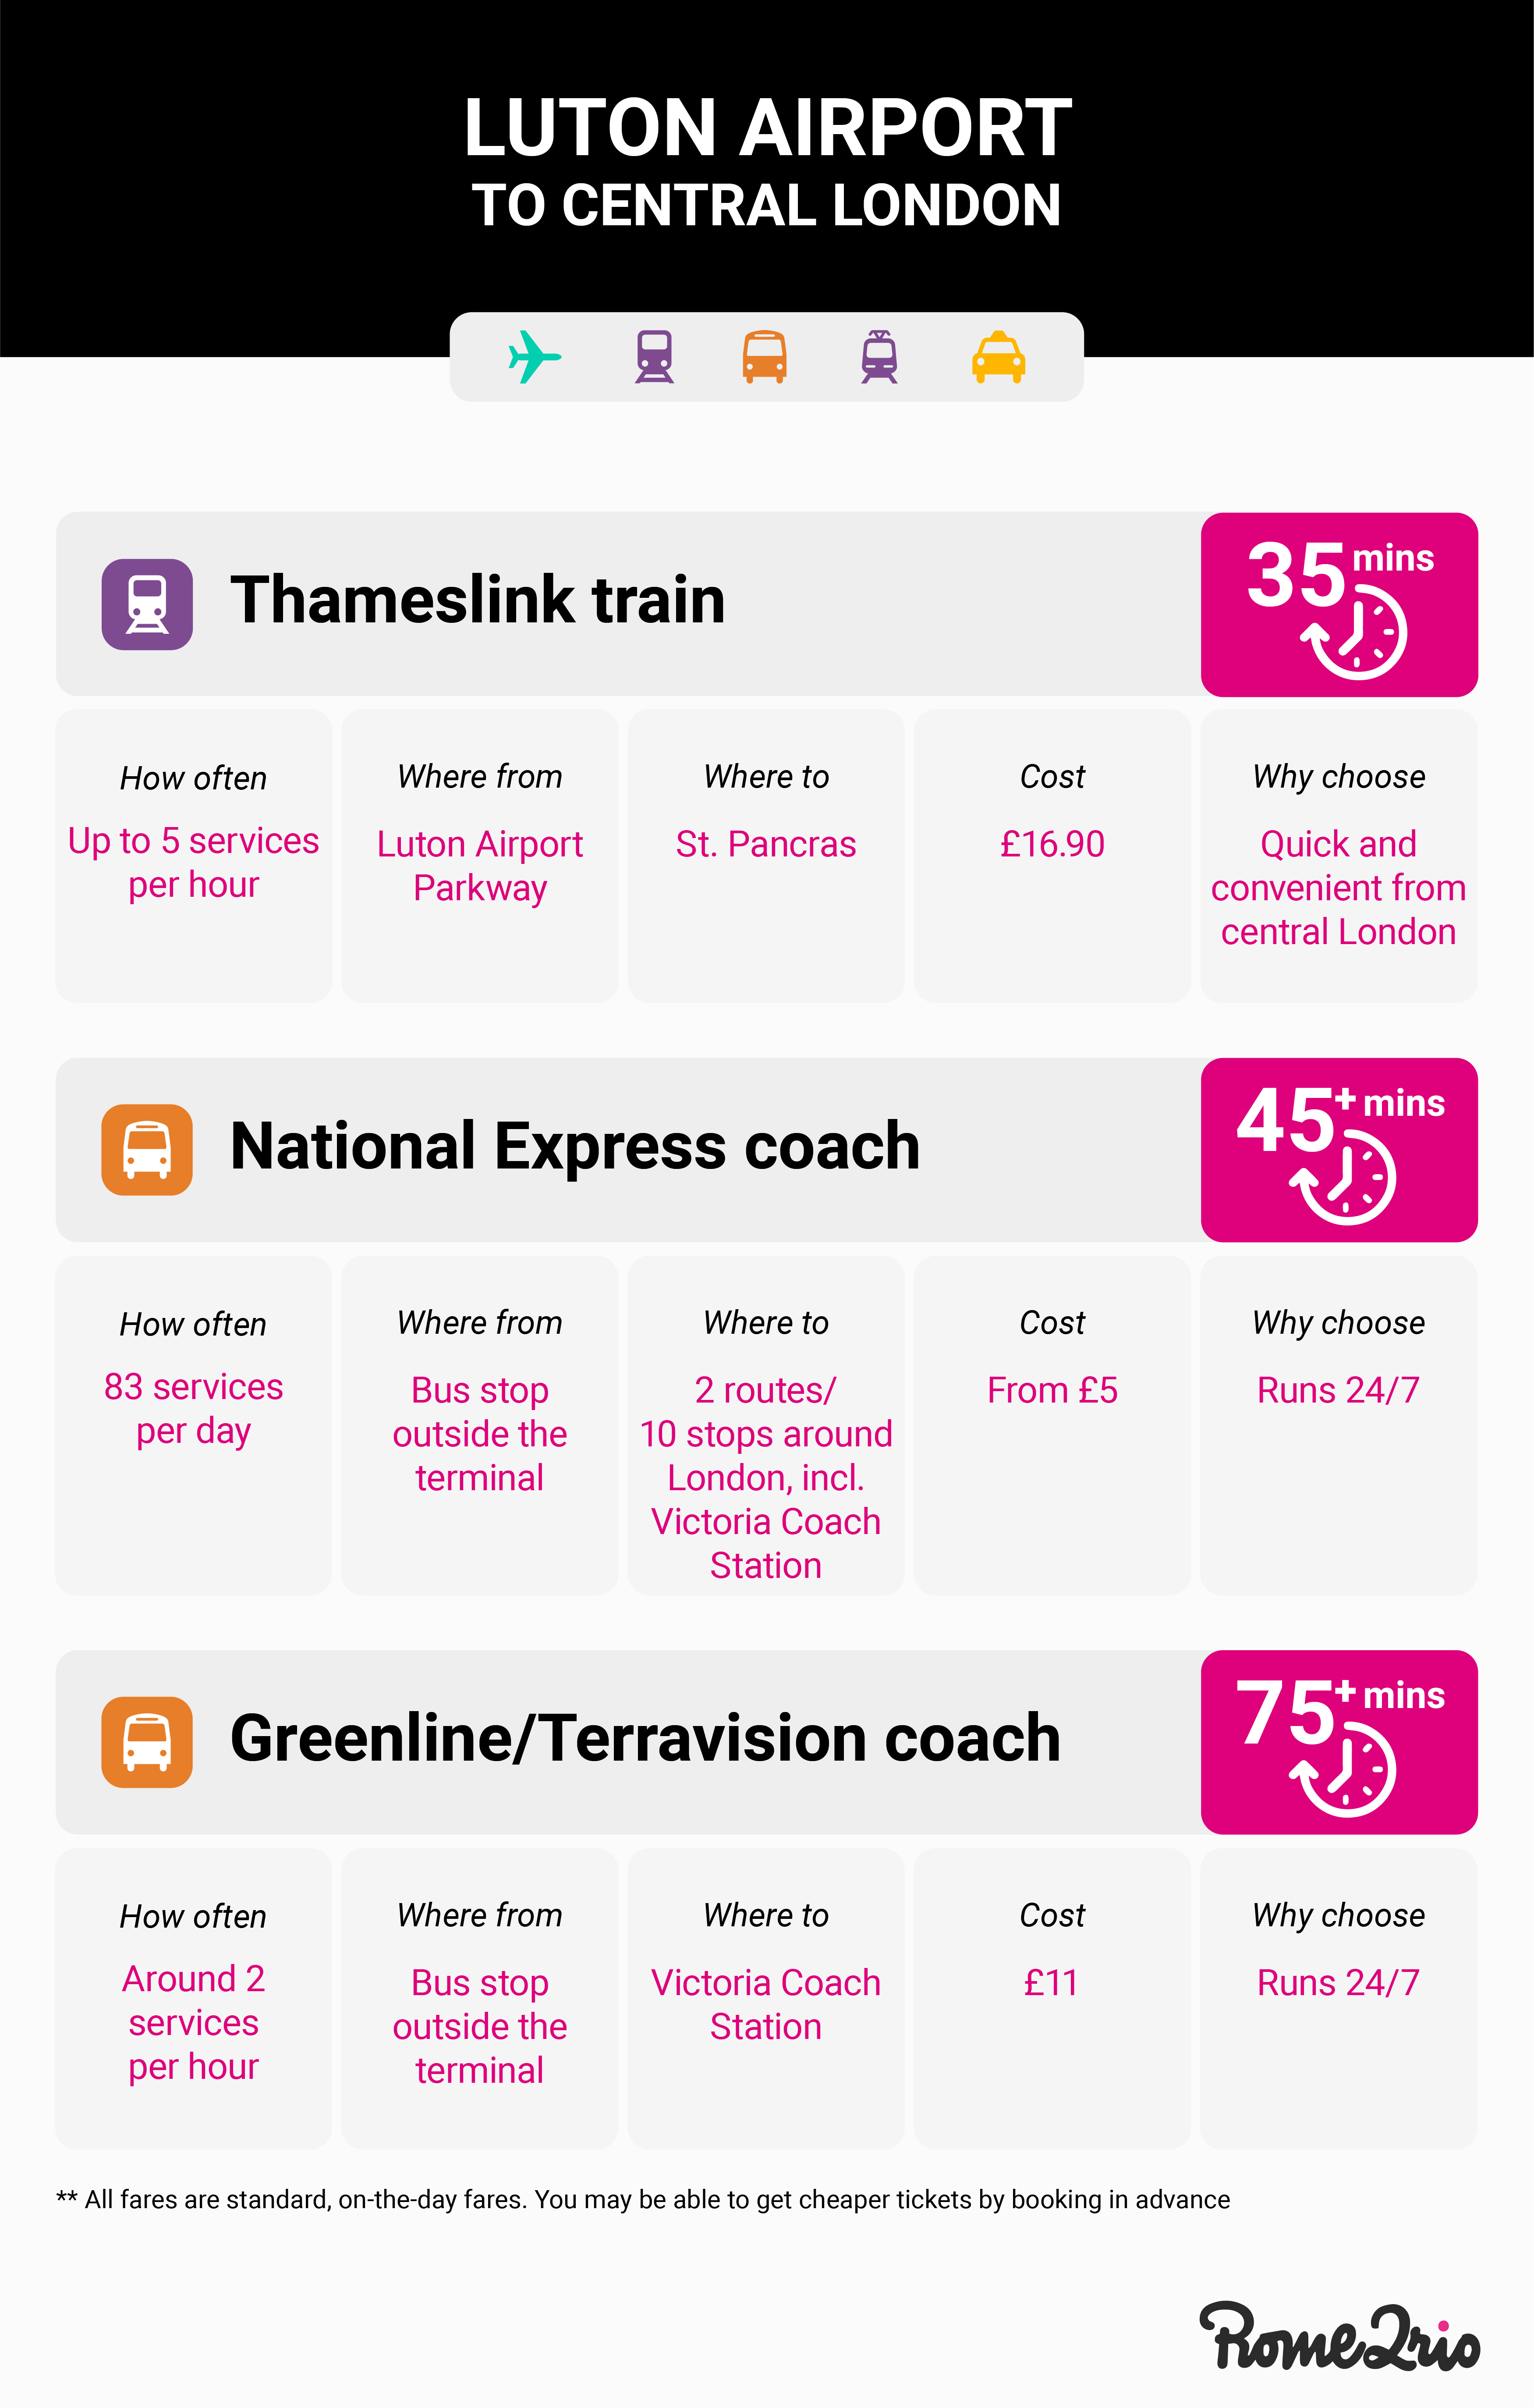 Airport transport options to get from Luton airport to central London